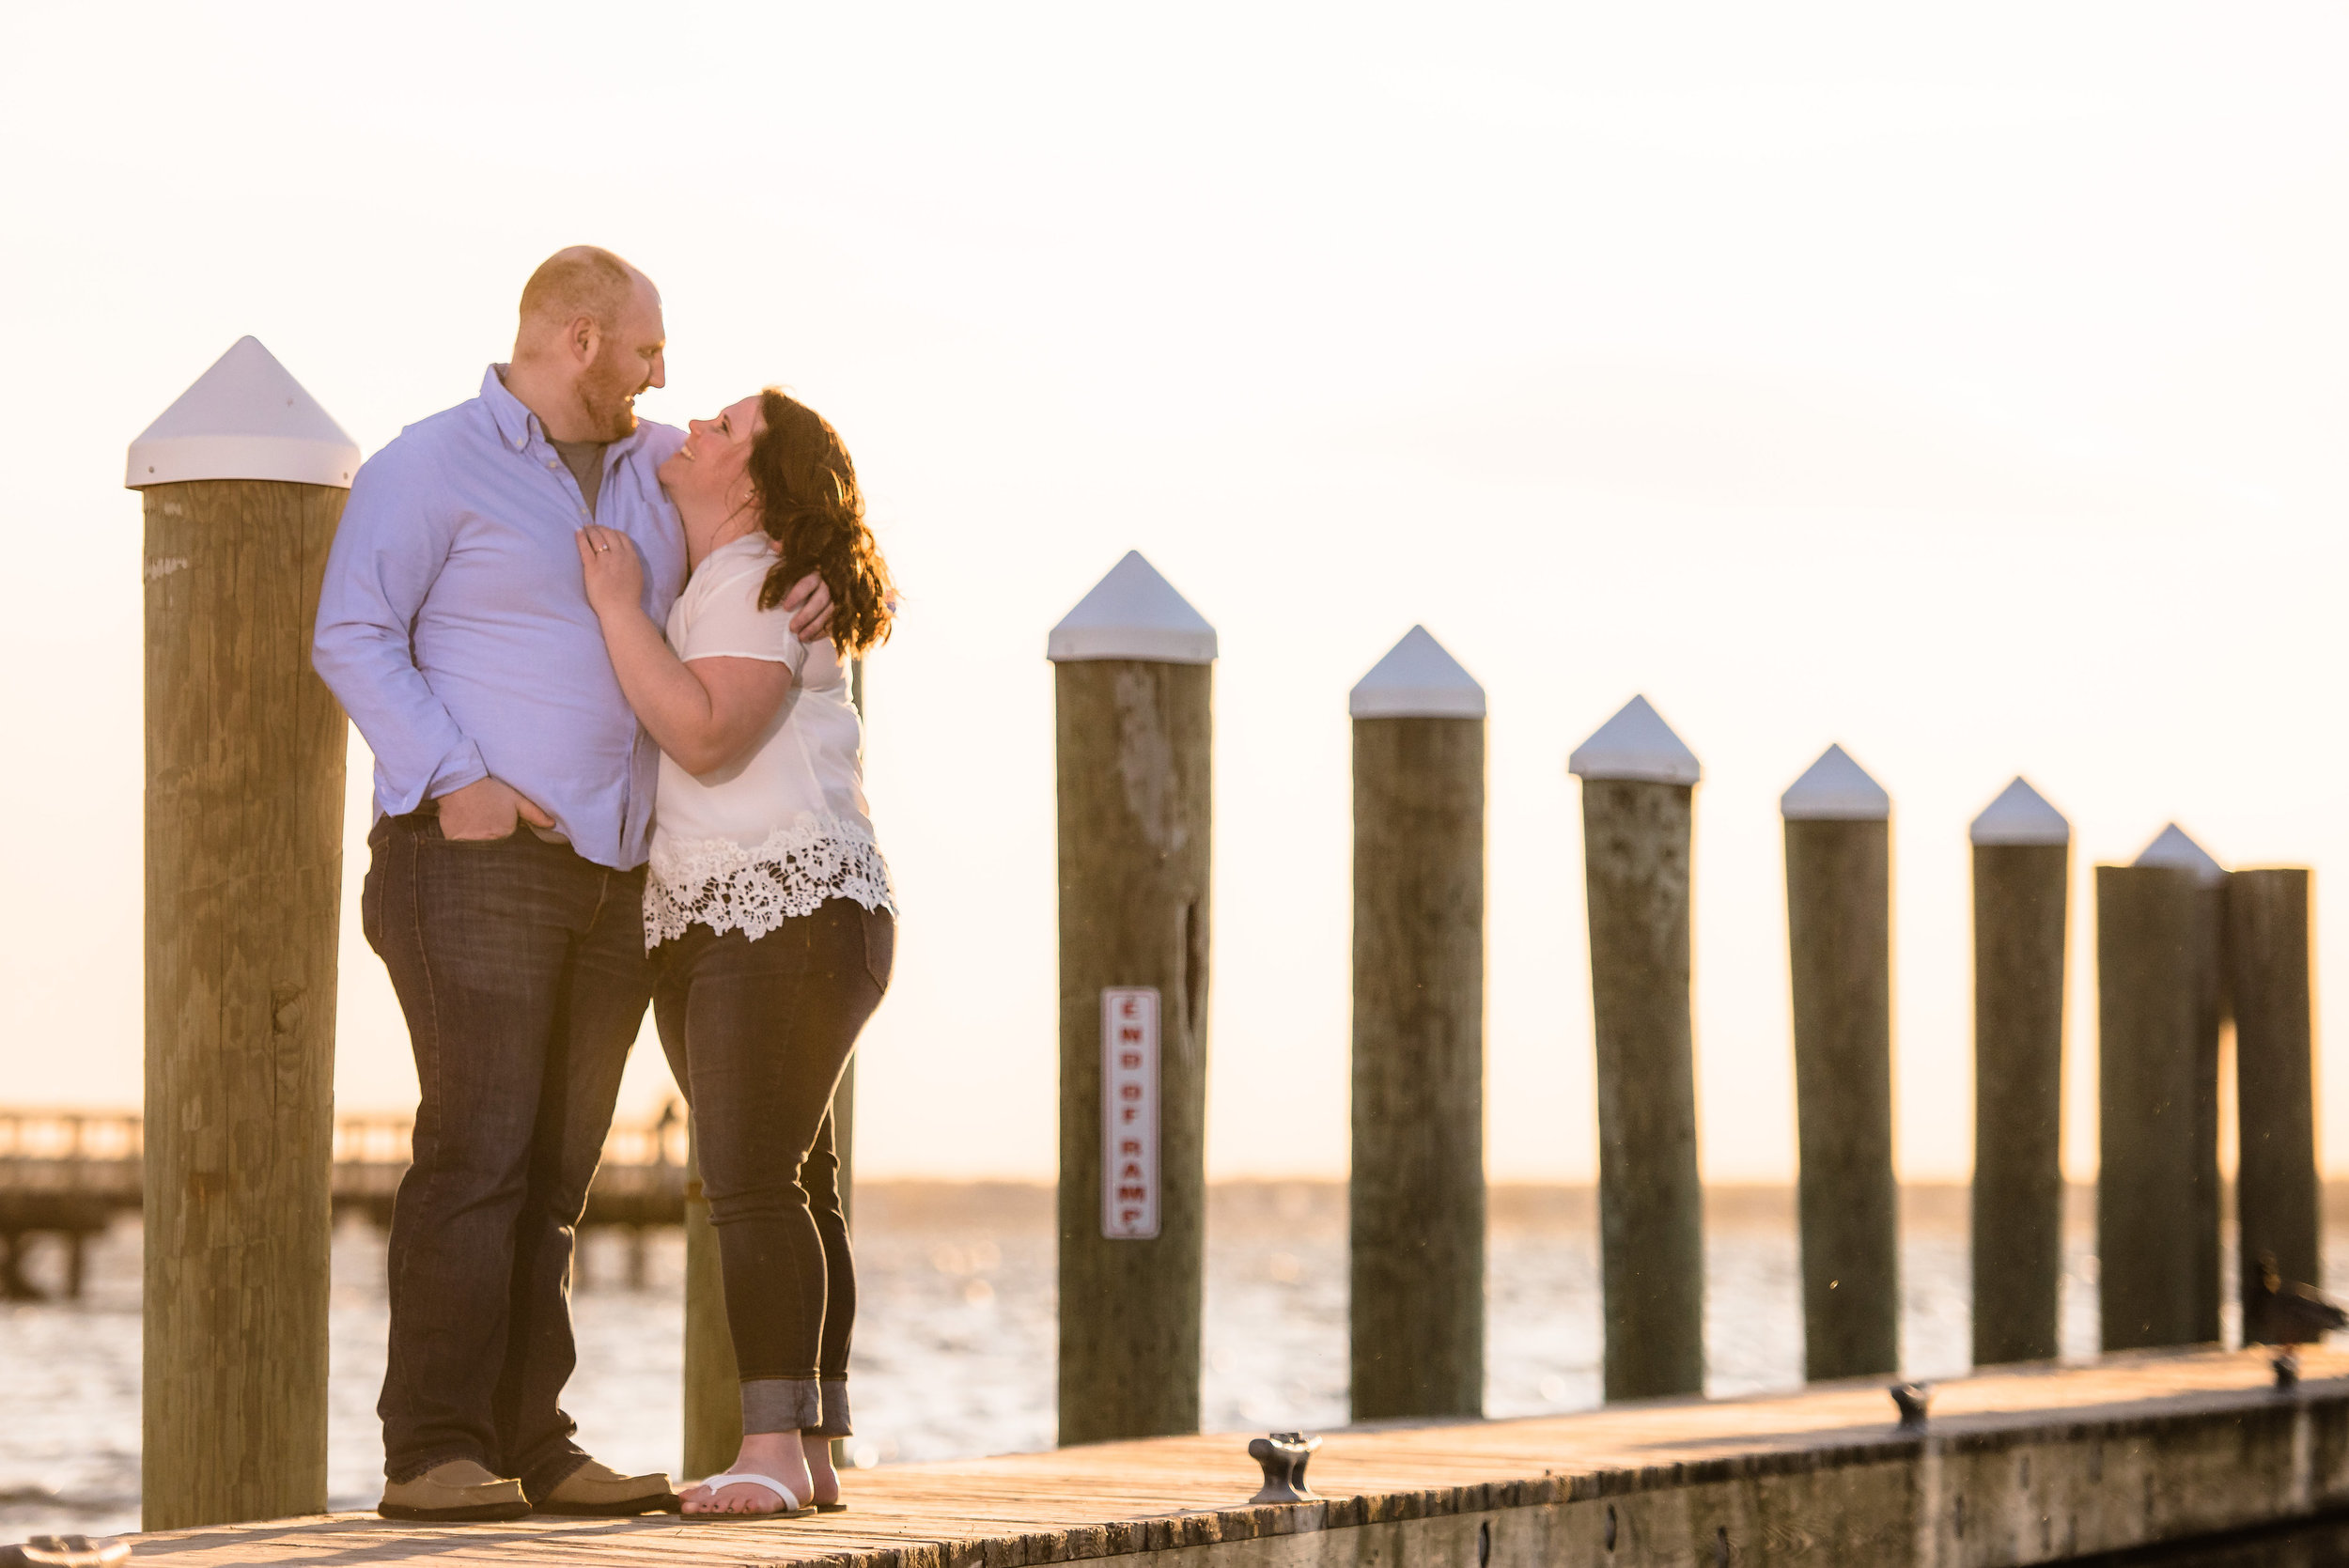 Seaside, NJ Boardwalk & Beach Engagement Photos Jake & Jessica 10